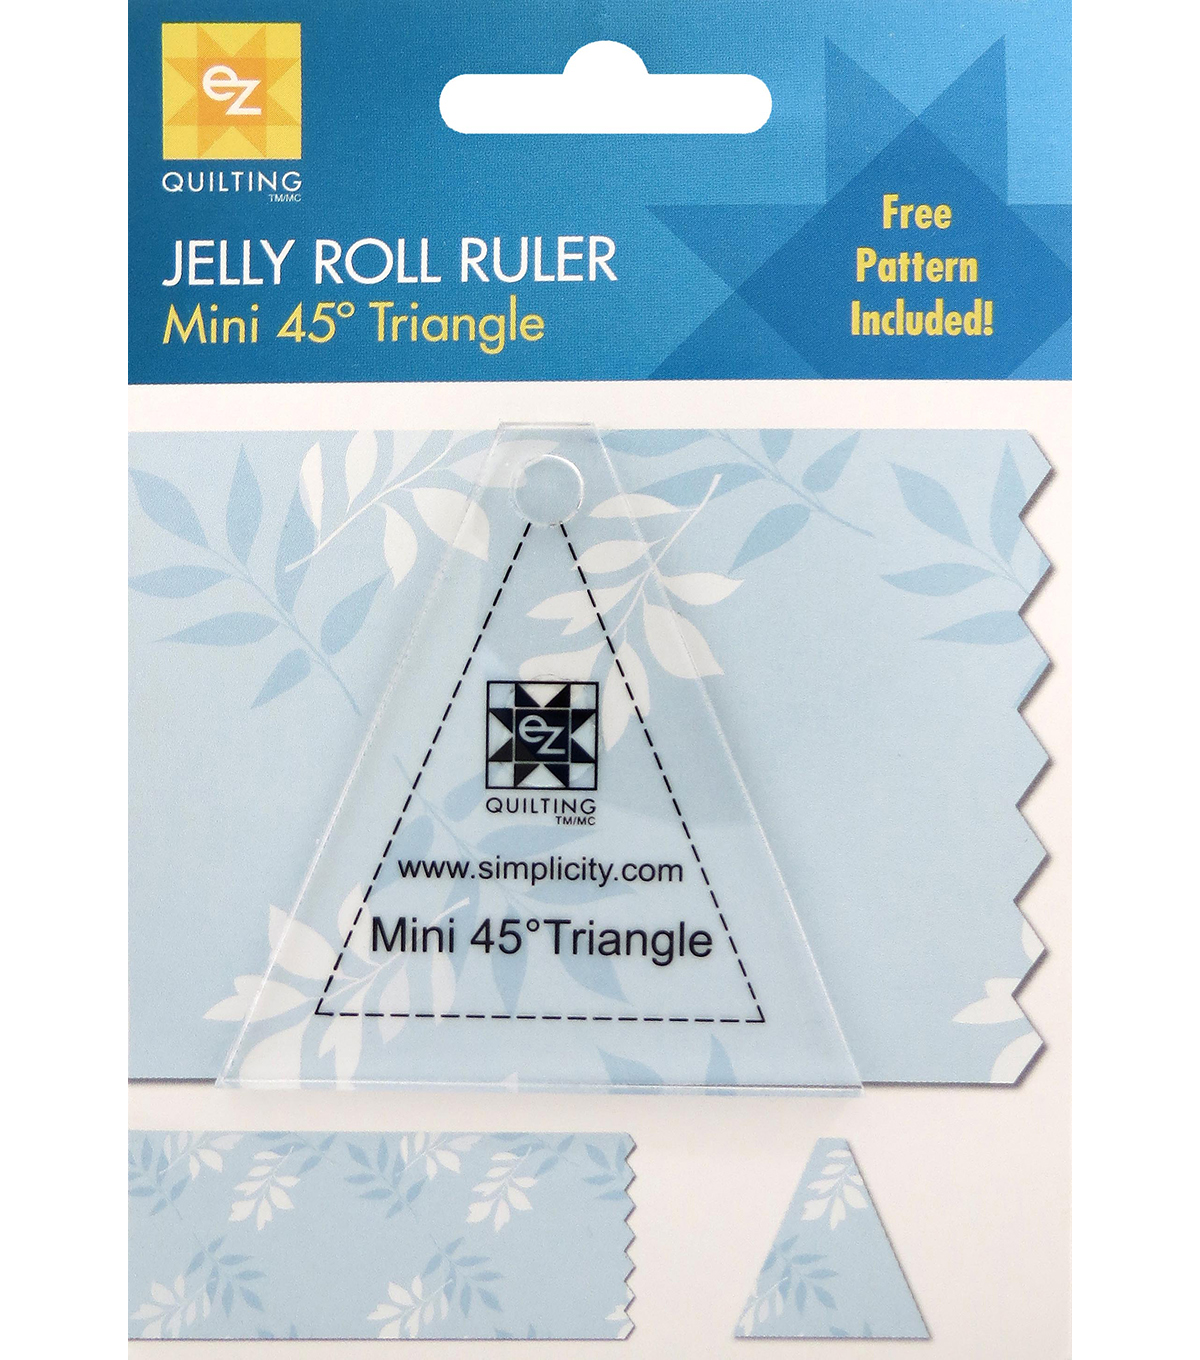 Ez Quilting Mini 45° Triangle Jelly Roll Ruler